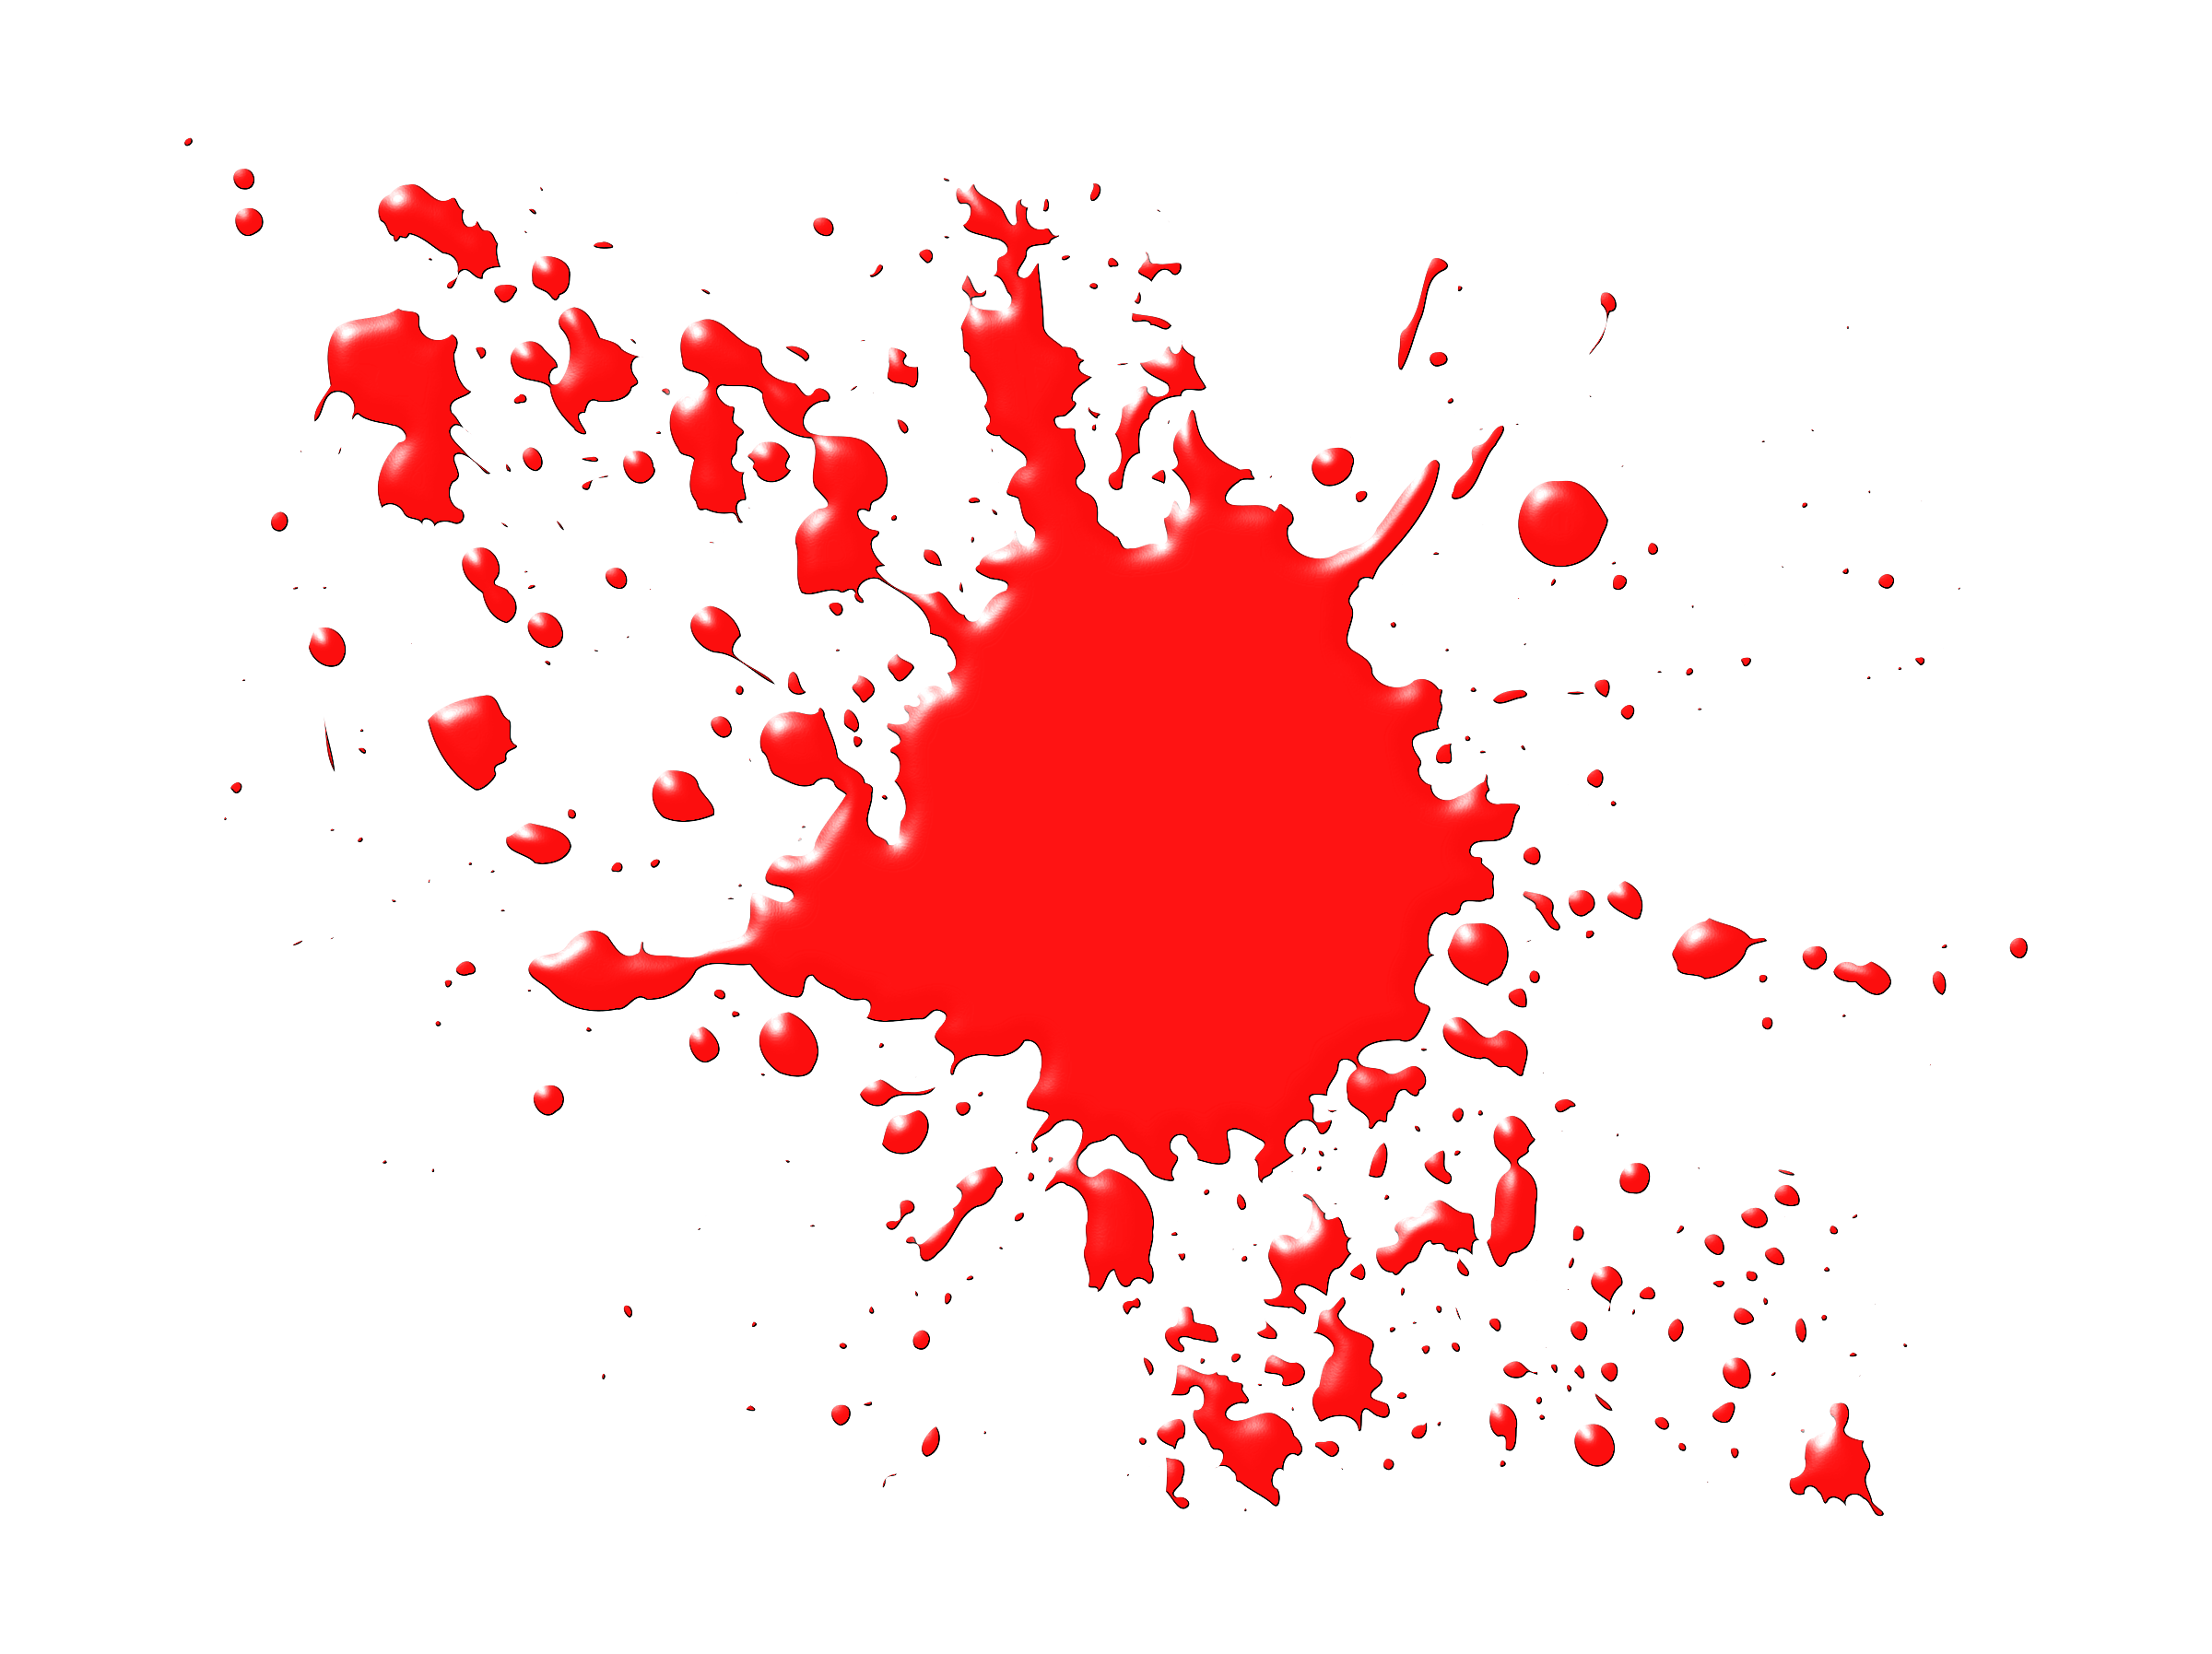 Blood Png Image. Blood Splatter Clip Art Images, Blood Splatter.